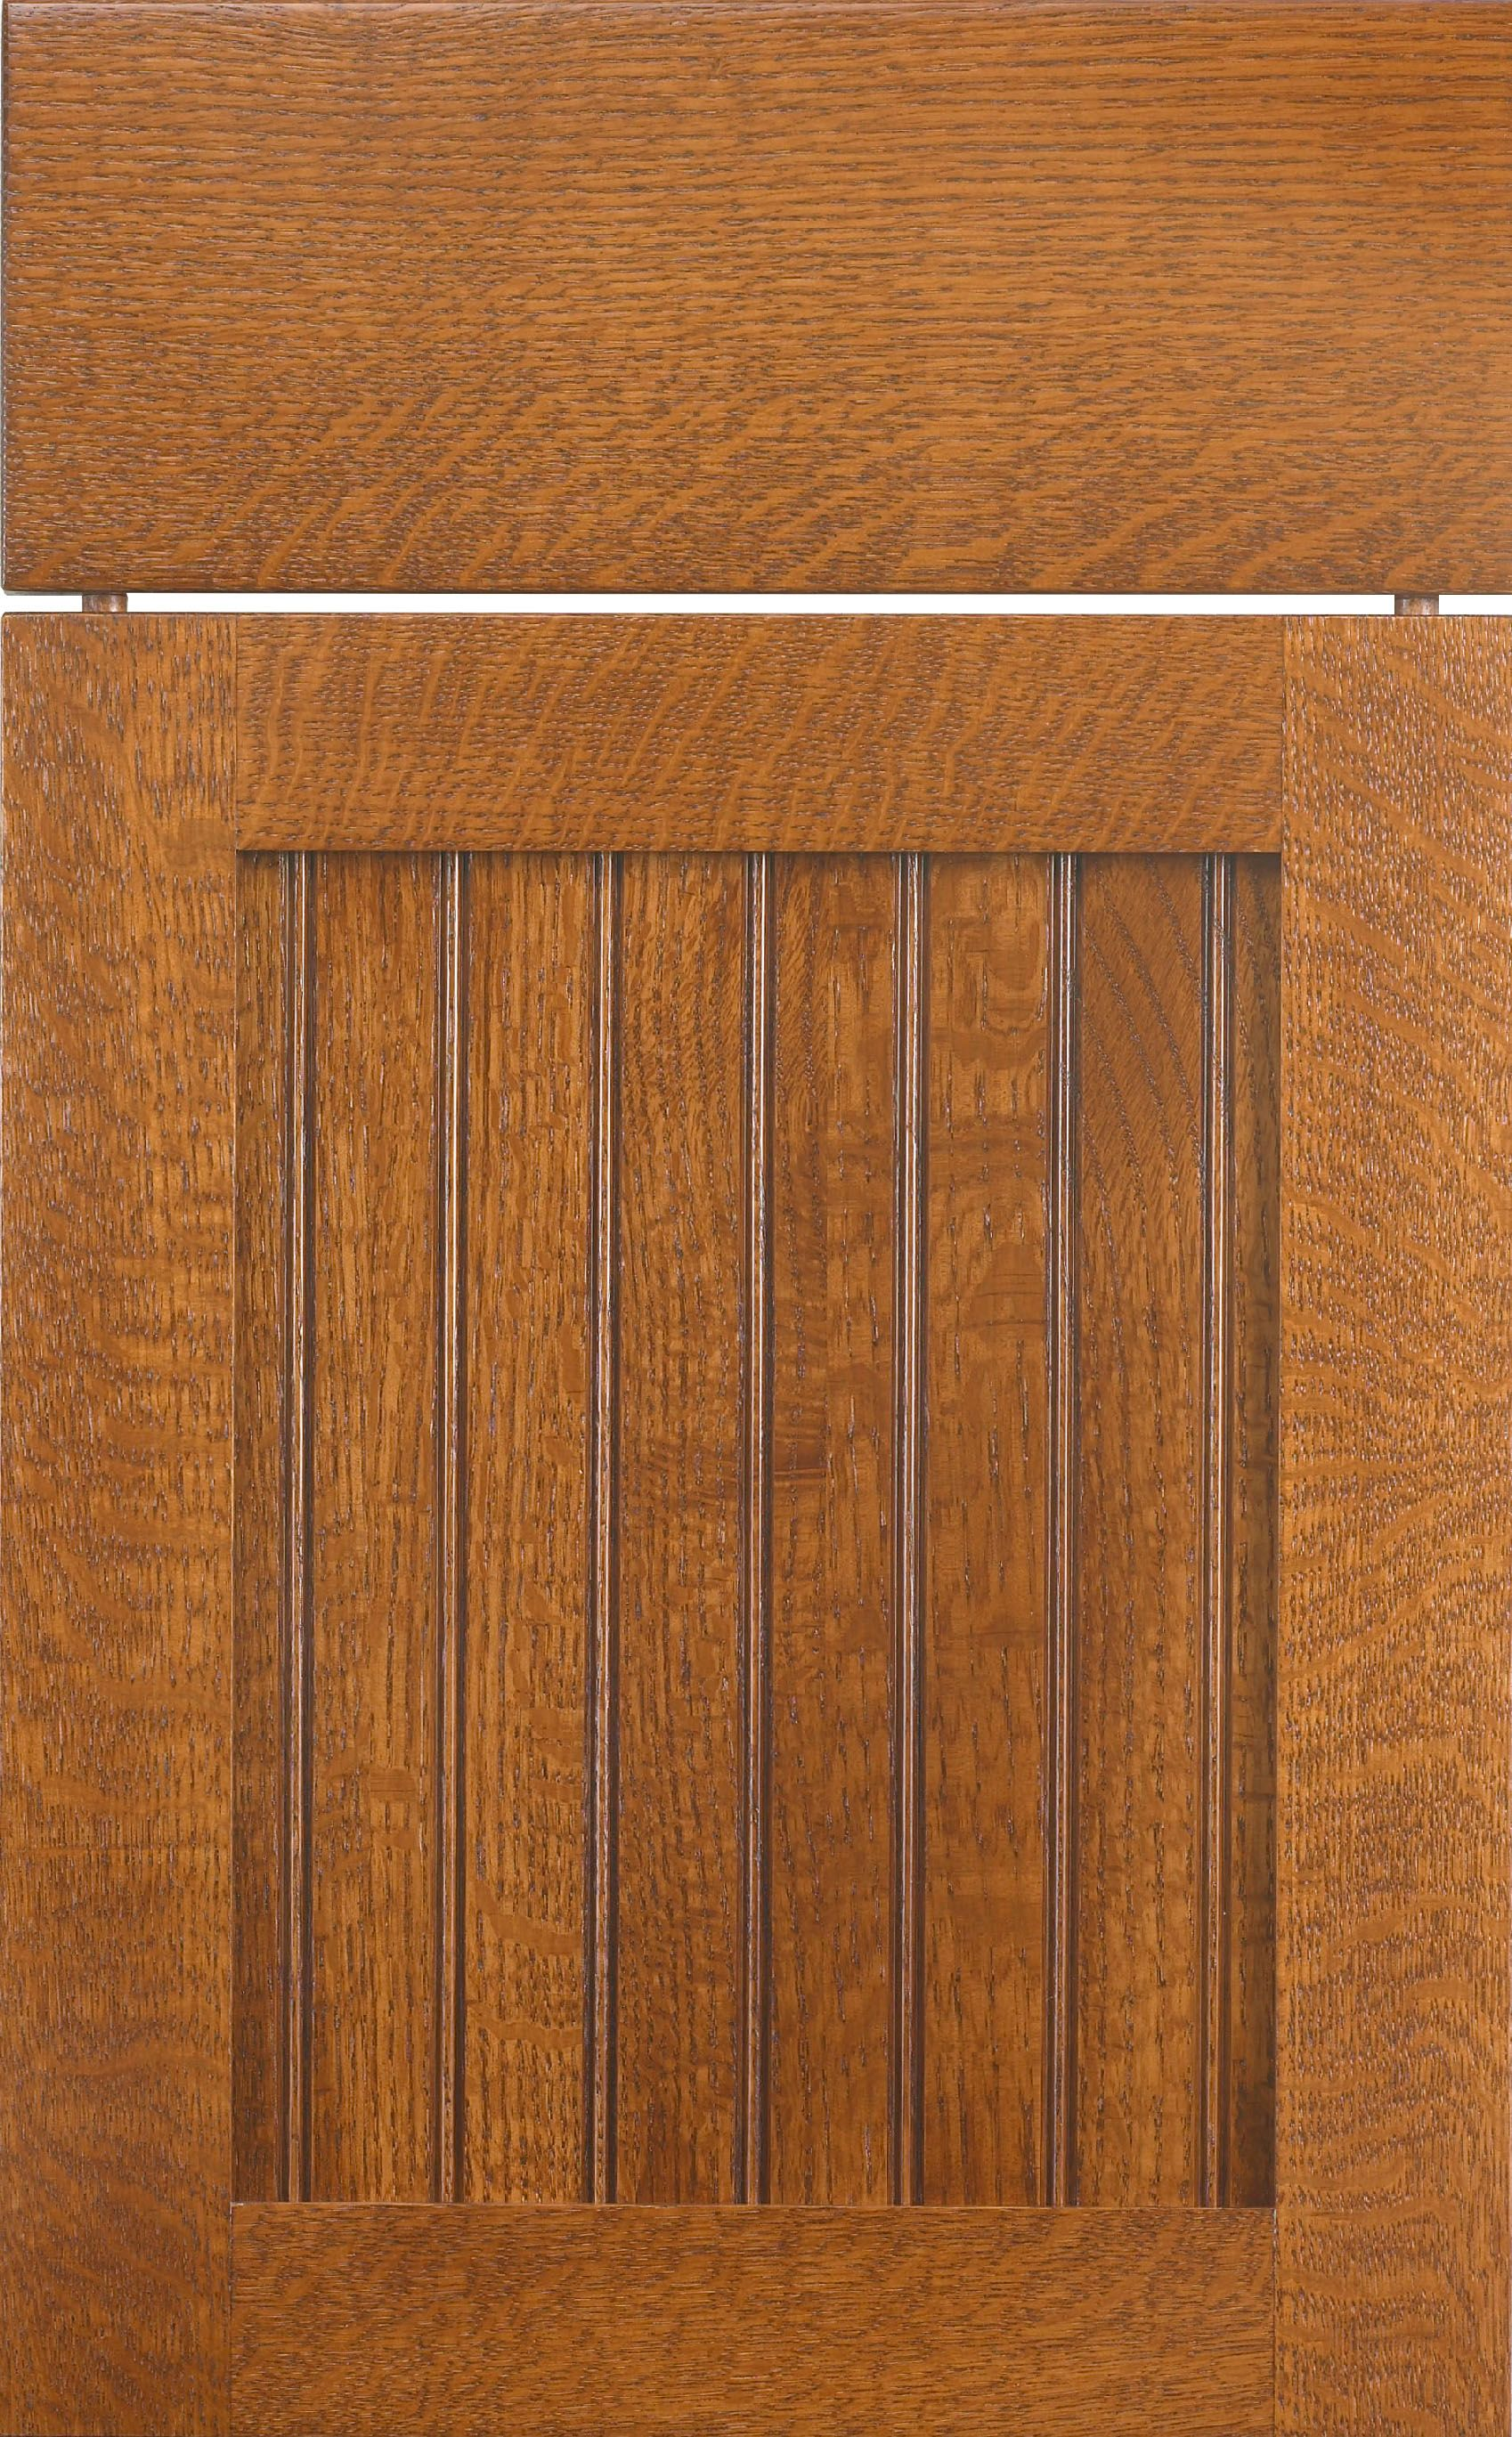 Bridgeport Beaded door style by #WoodMode shown in Acorn finish on quarter sawn oak : acorn doors - Pezcame.Com